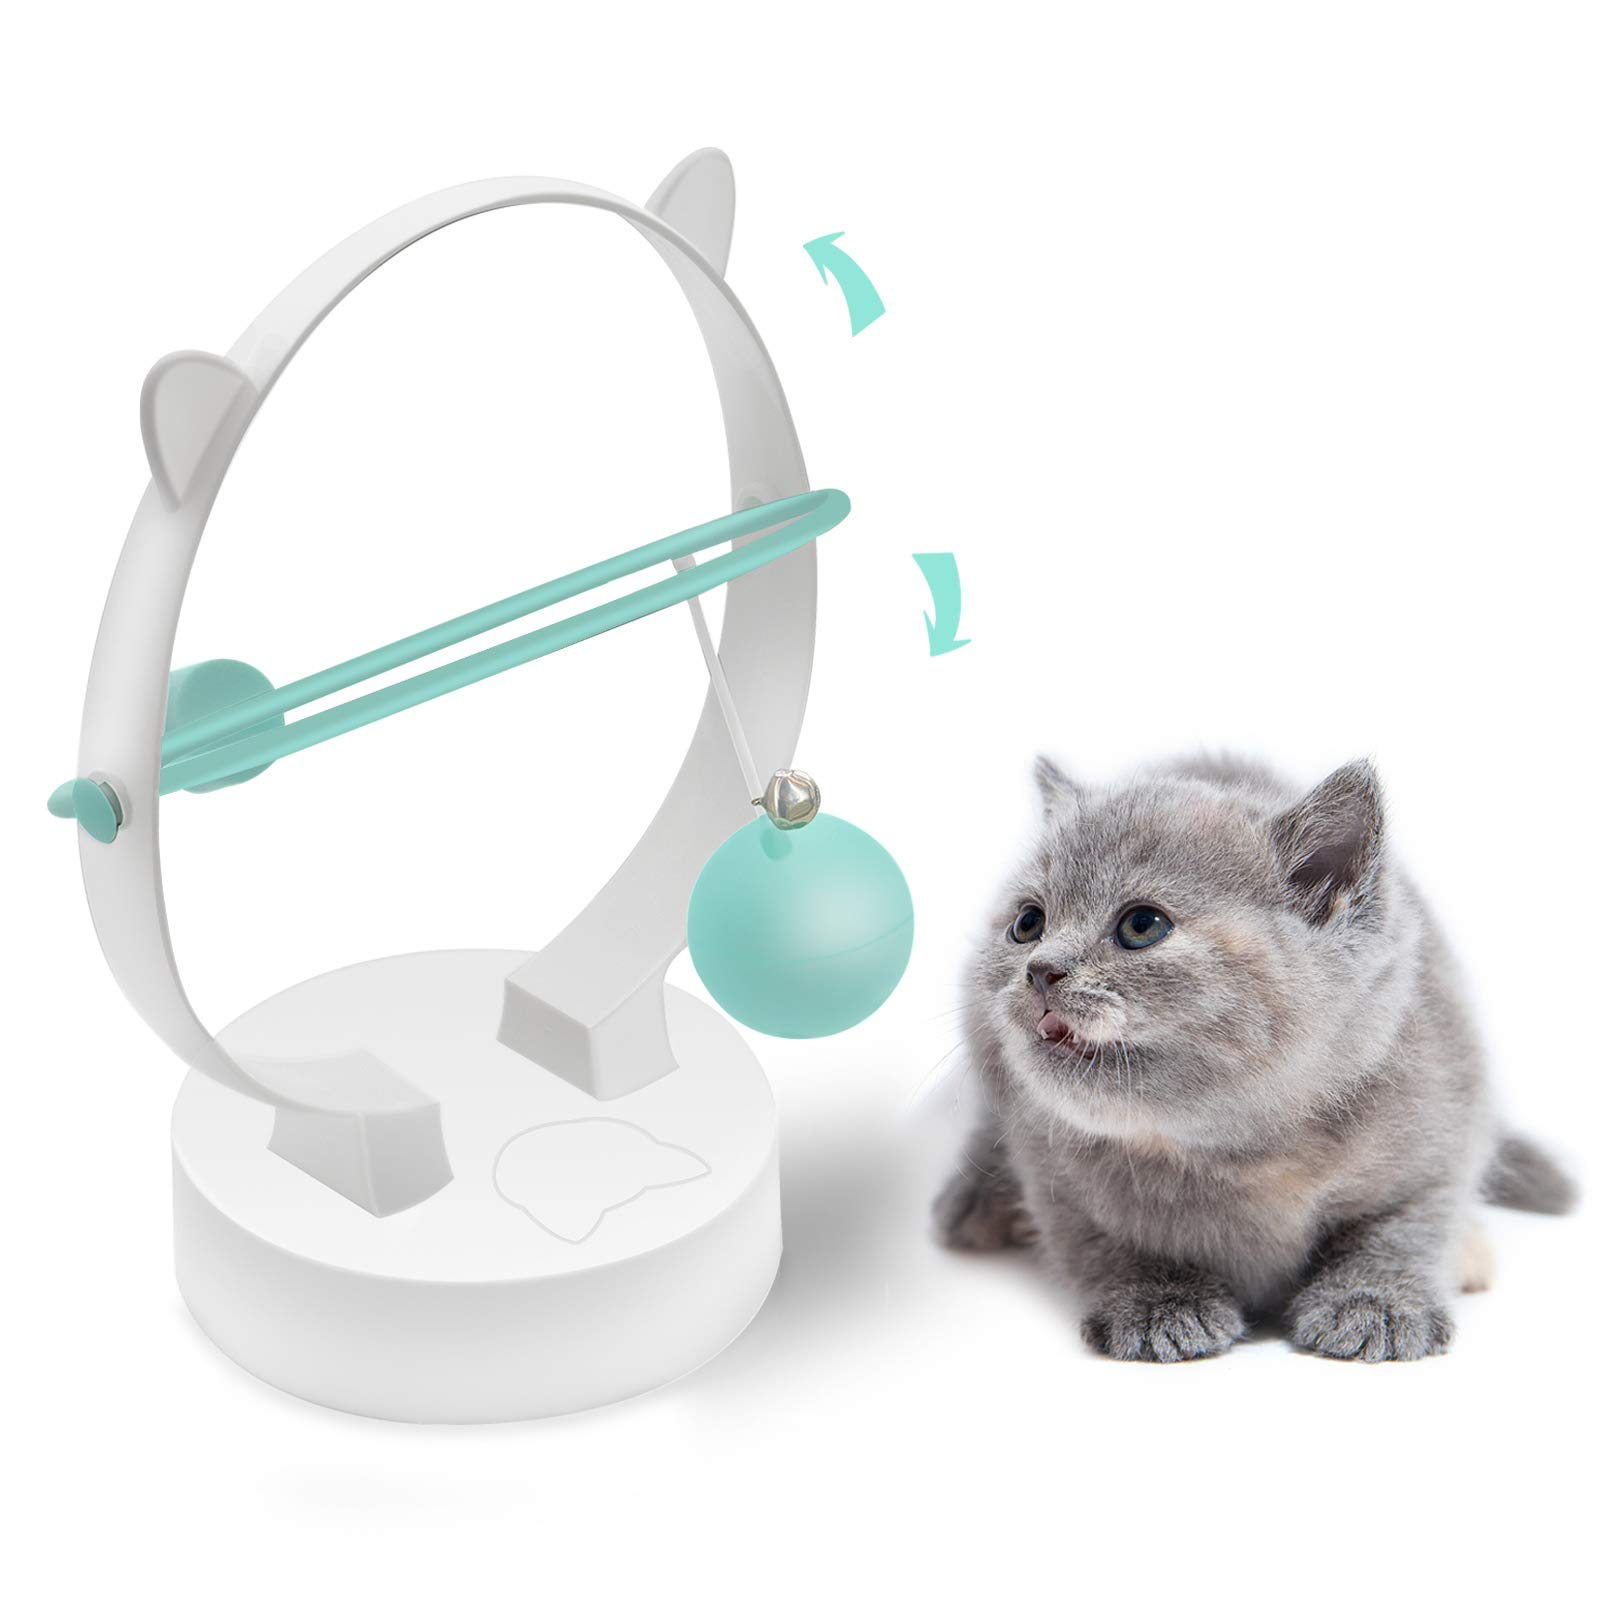 Rebnihc Cat Toys for Indoor Cats, Interative Cat Ball Toy with Two Replactment Balls, Automatic Kinetic Swing Electronic Kitten Toys,Funny Gifts for Cats